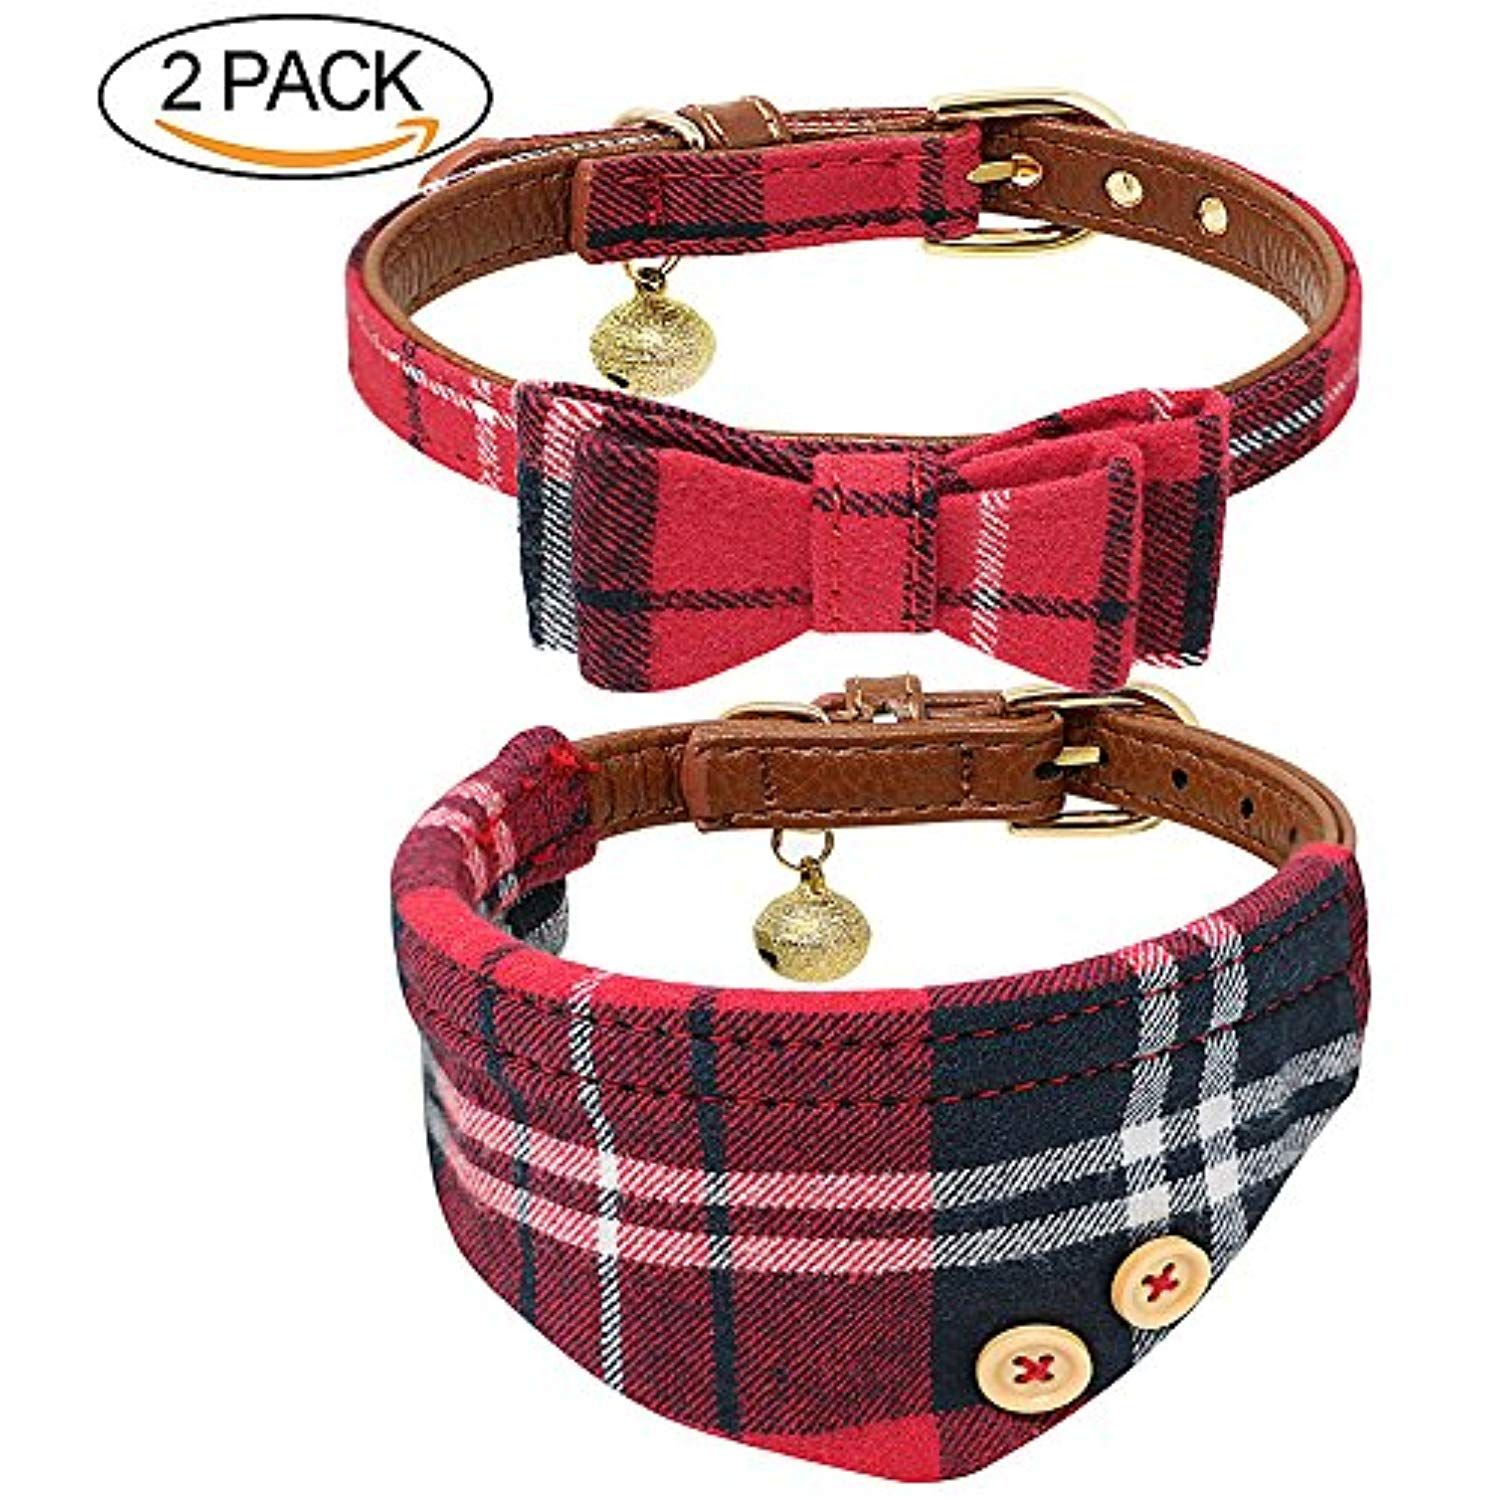 B Bascolor Pet Collar with Bell Leather and Plaid Bowtie